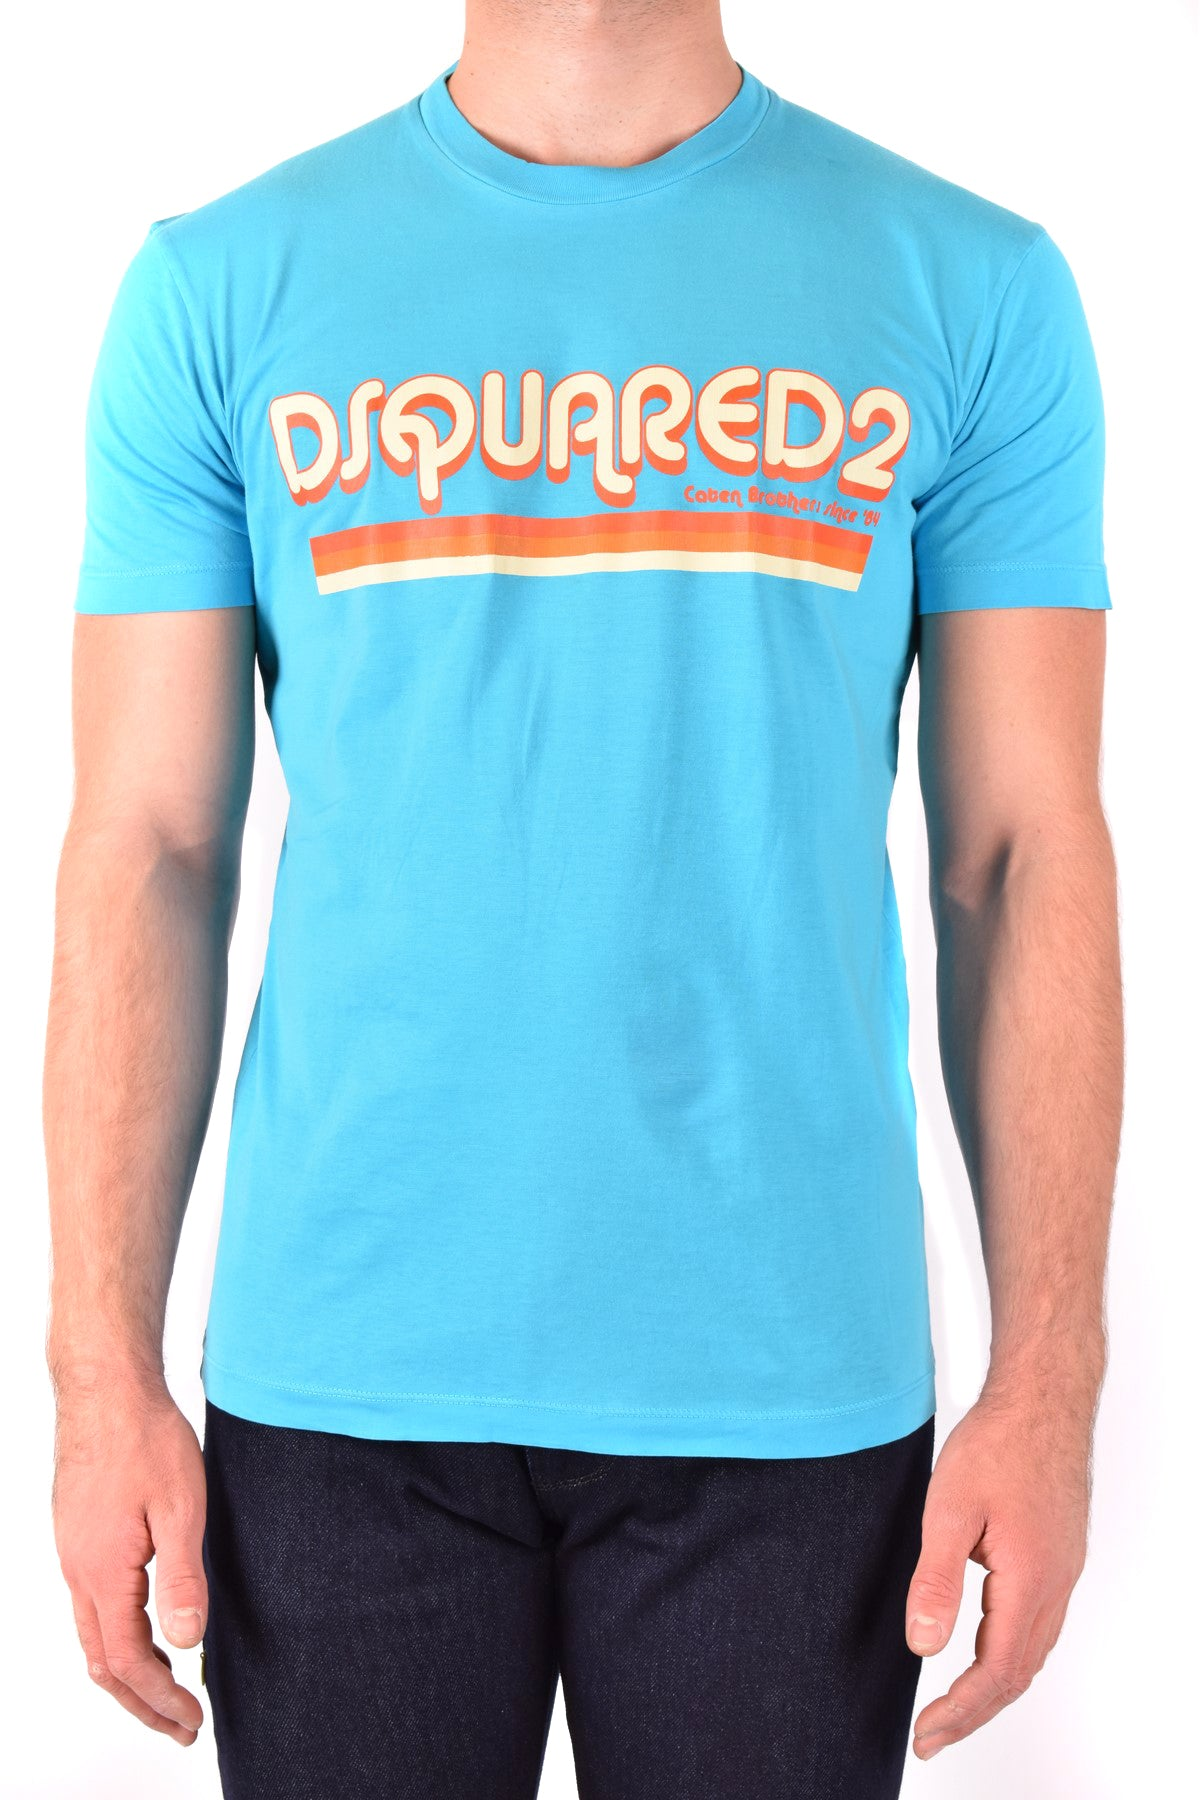 T-Shirt Dsquared-Men's Fashion - Men's Clothing - Tops & Tees - T-Shirts-S-Product Details Terms: New With LabelClothing Type: T-ShirtMain Color: BlueSeason: Spring / SummerMade In: ItalyGender: ManSize: IntComposition: Cotton 100%Year: 2020Manufacturer Part Number: S71Gd0887-Keyomi-Sook